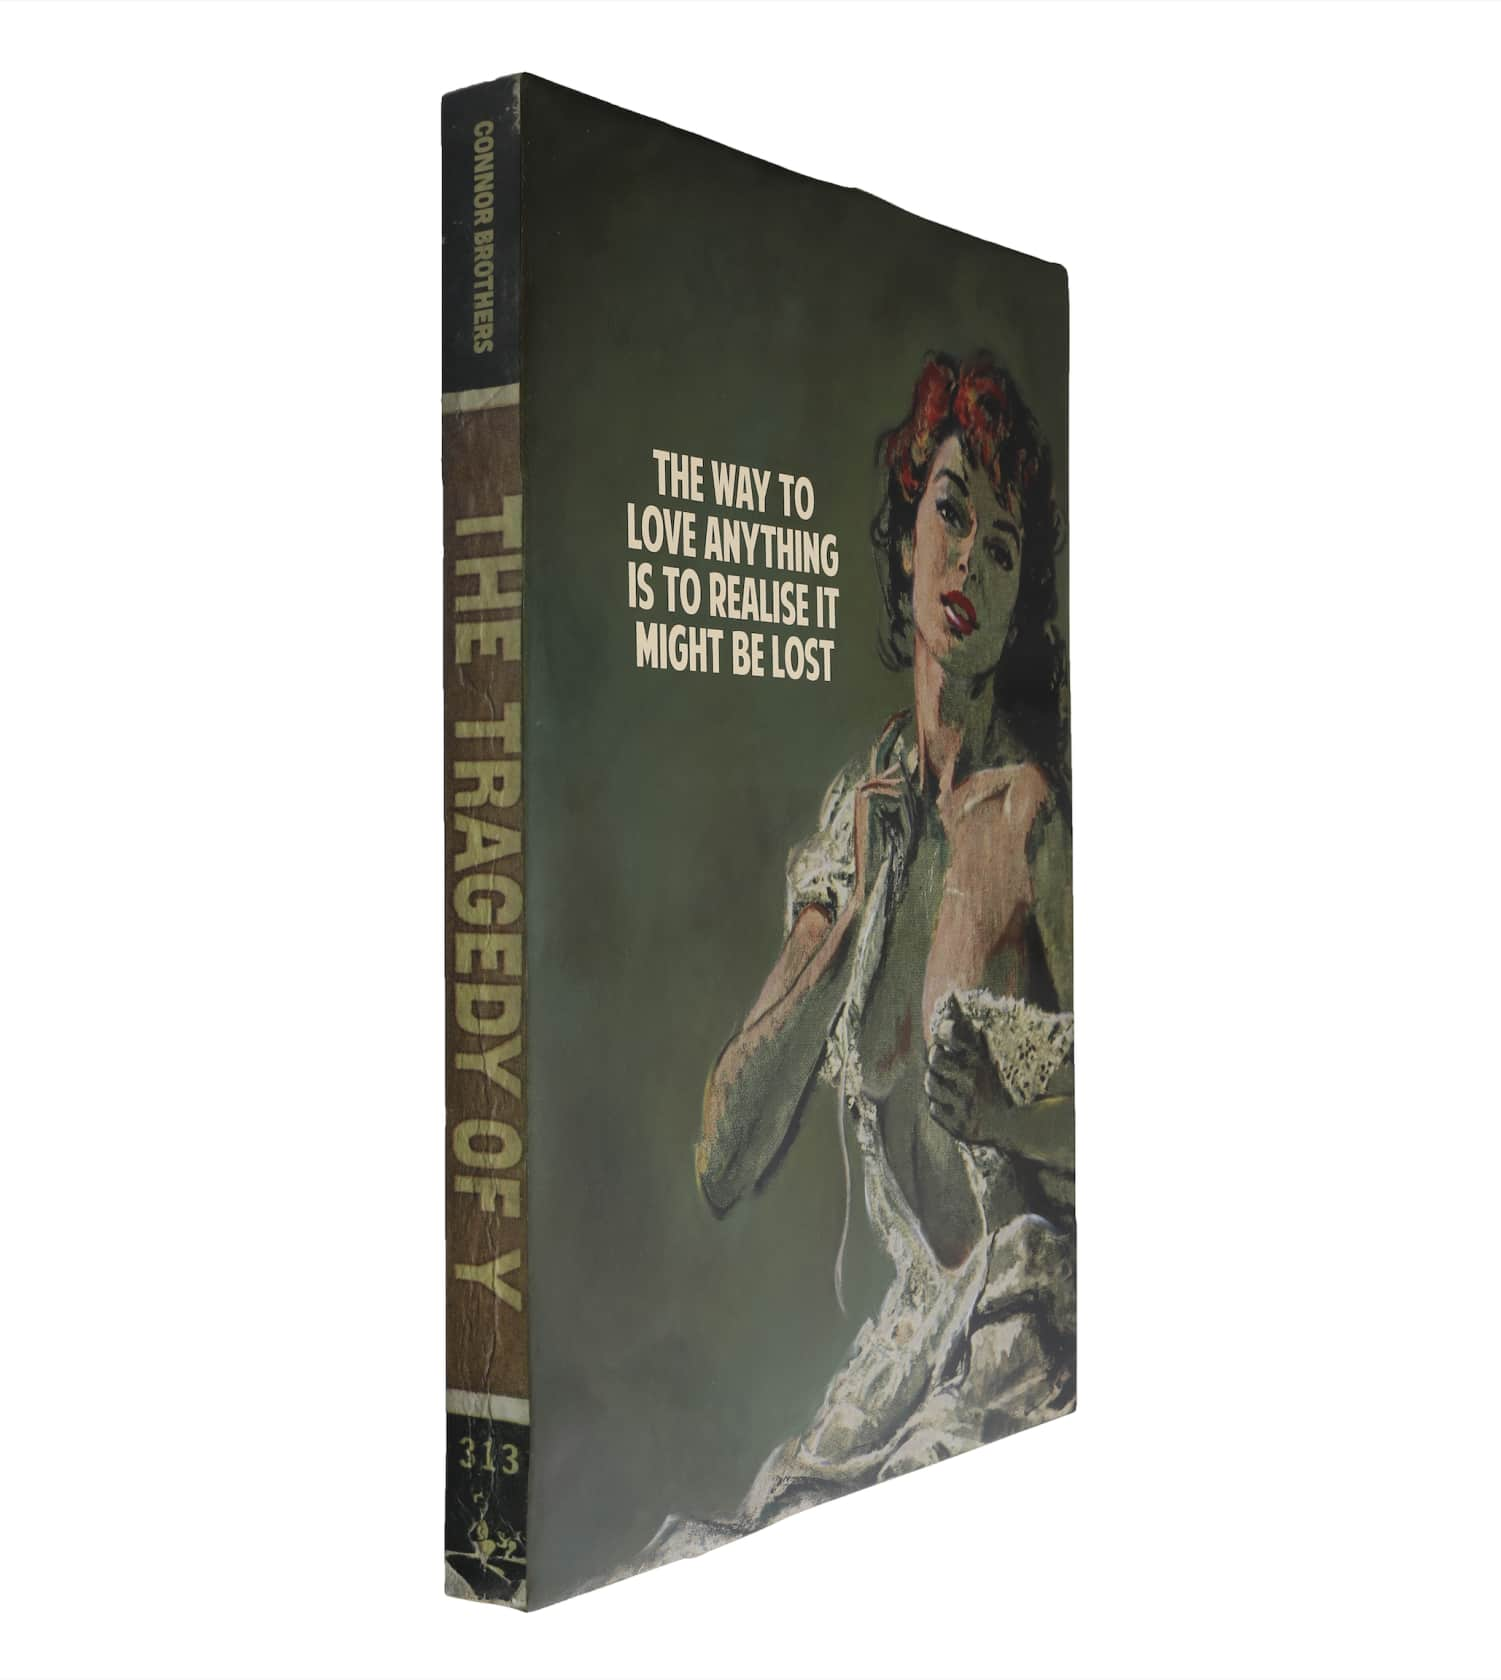 the connor brothers The Way To Love Anything Hand painted wooden book with silkscreen